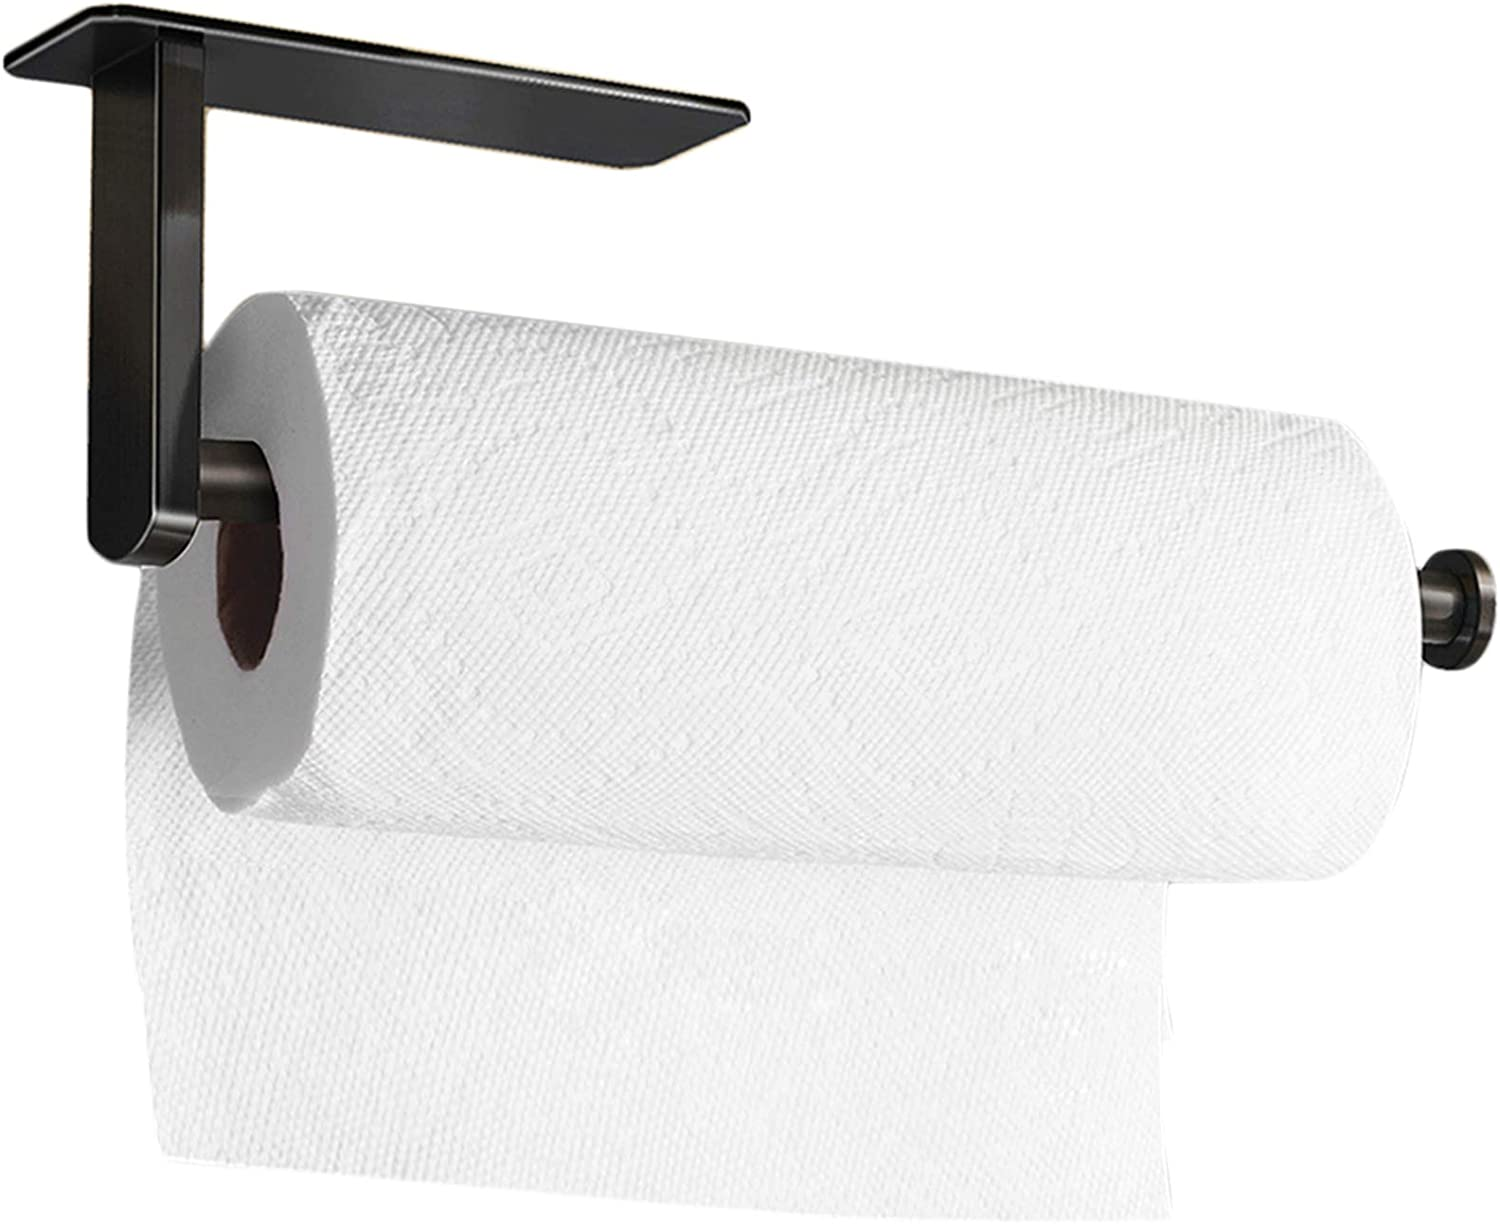 Amazon Com Tofiigrem Self Adhesive Paper Towel Holder Under Cabinet Mount Stick On Wall Black Paper Towel Rack For Large Kitchen Roll Paper Stainless Steel Kitchen Dining